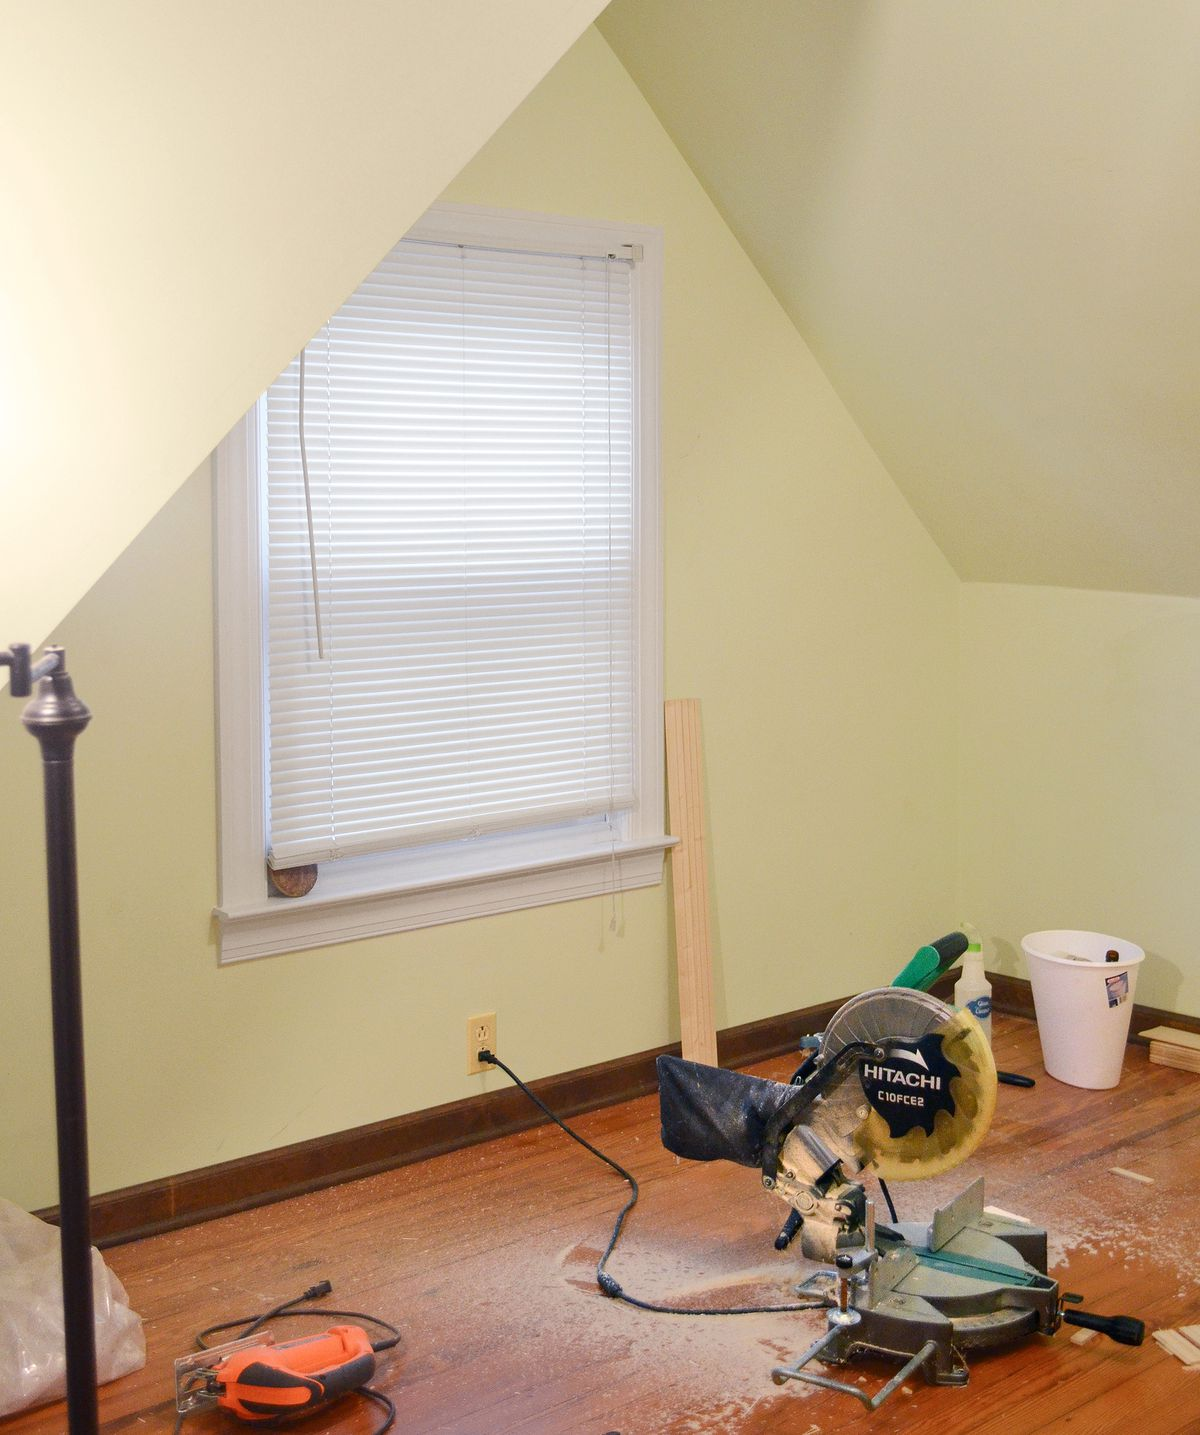 <p><strong>Before: </strong>The homeowner's son left for college shortly after move-in day, so his dormer bedroom sat nearly empty for months.</p>